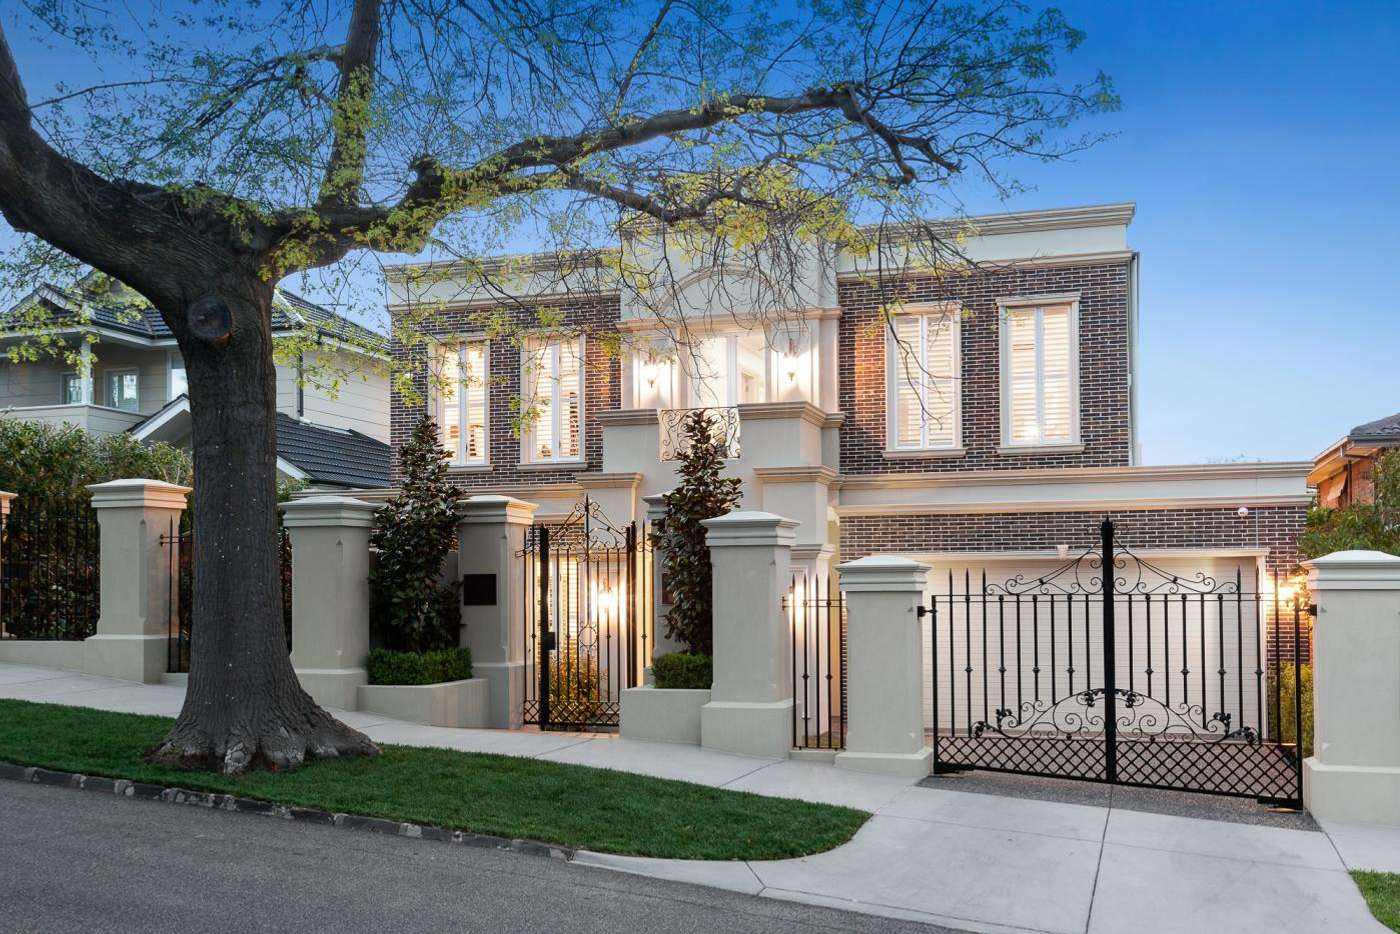 Main view of Homely house listing, 8 Webster Street, Camberwell VIC 3124